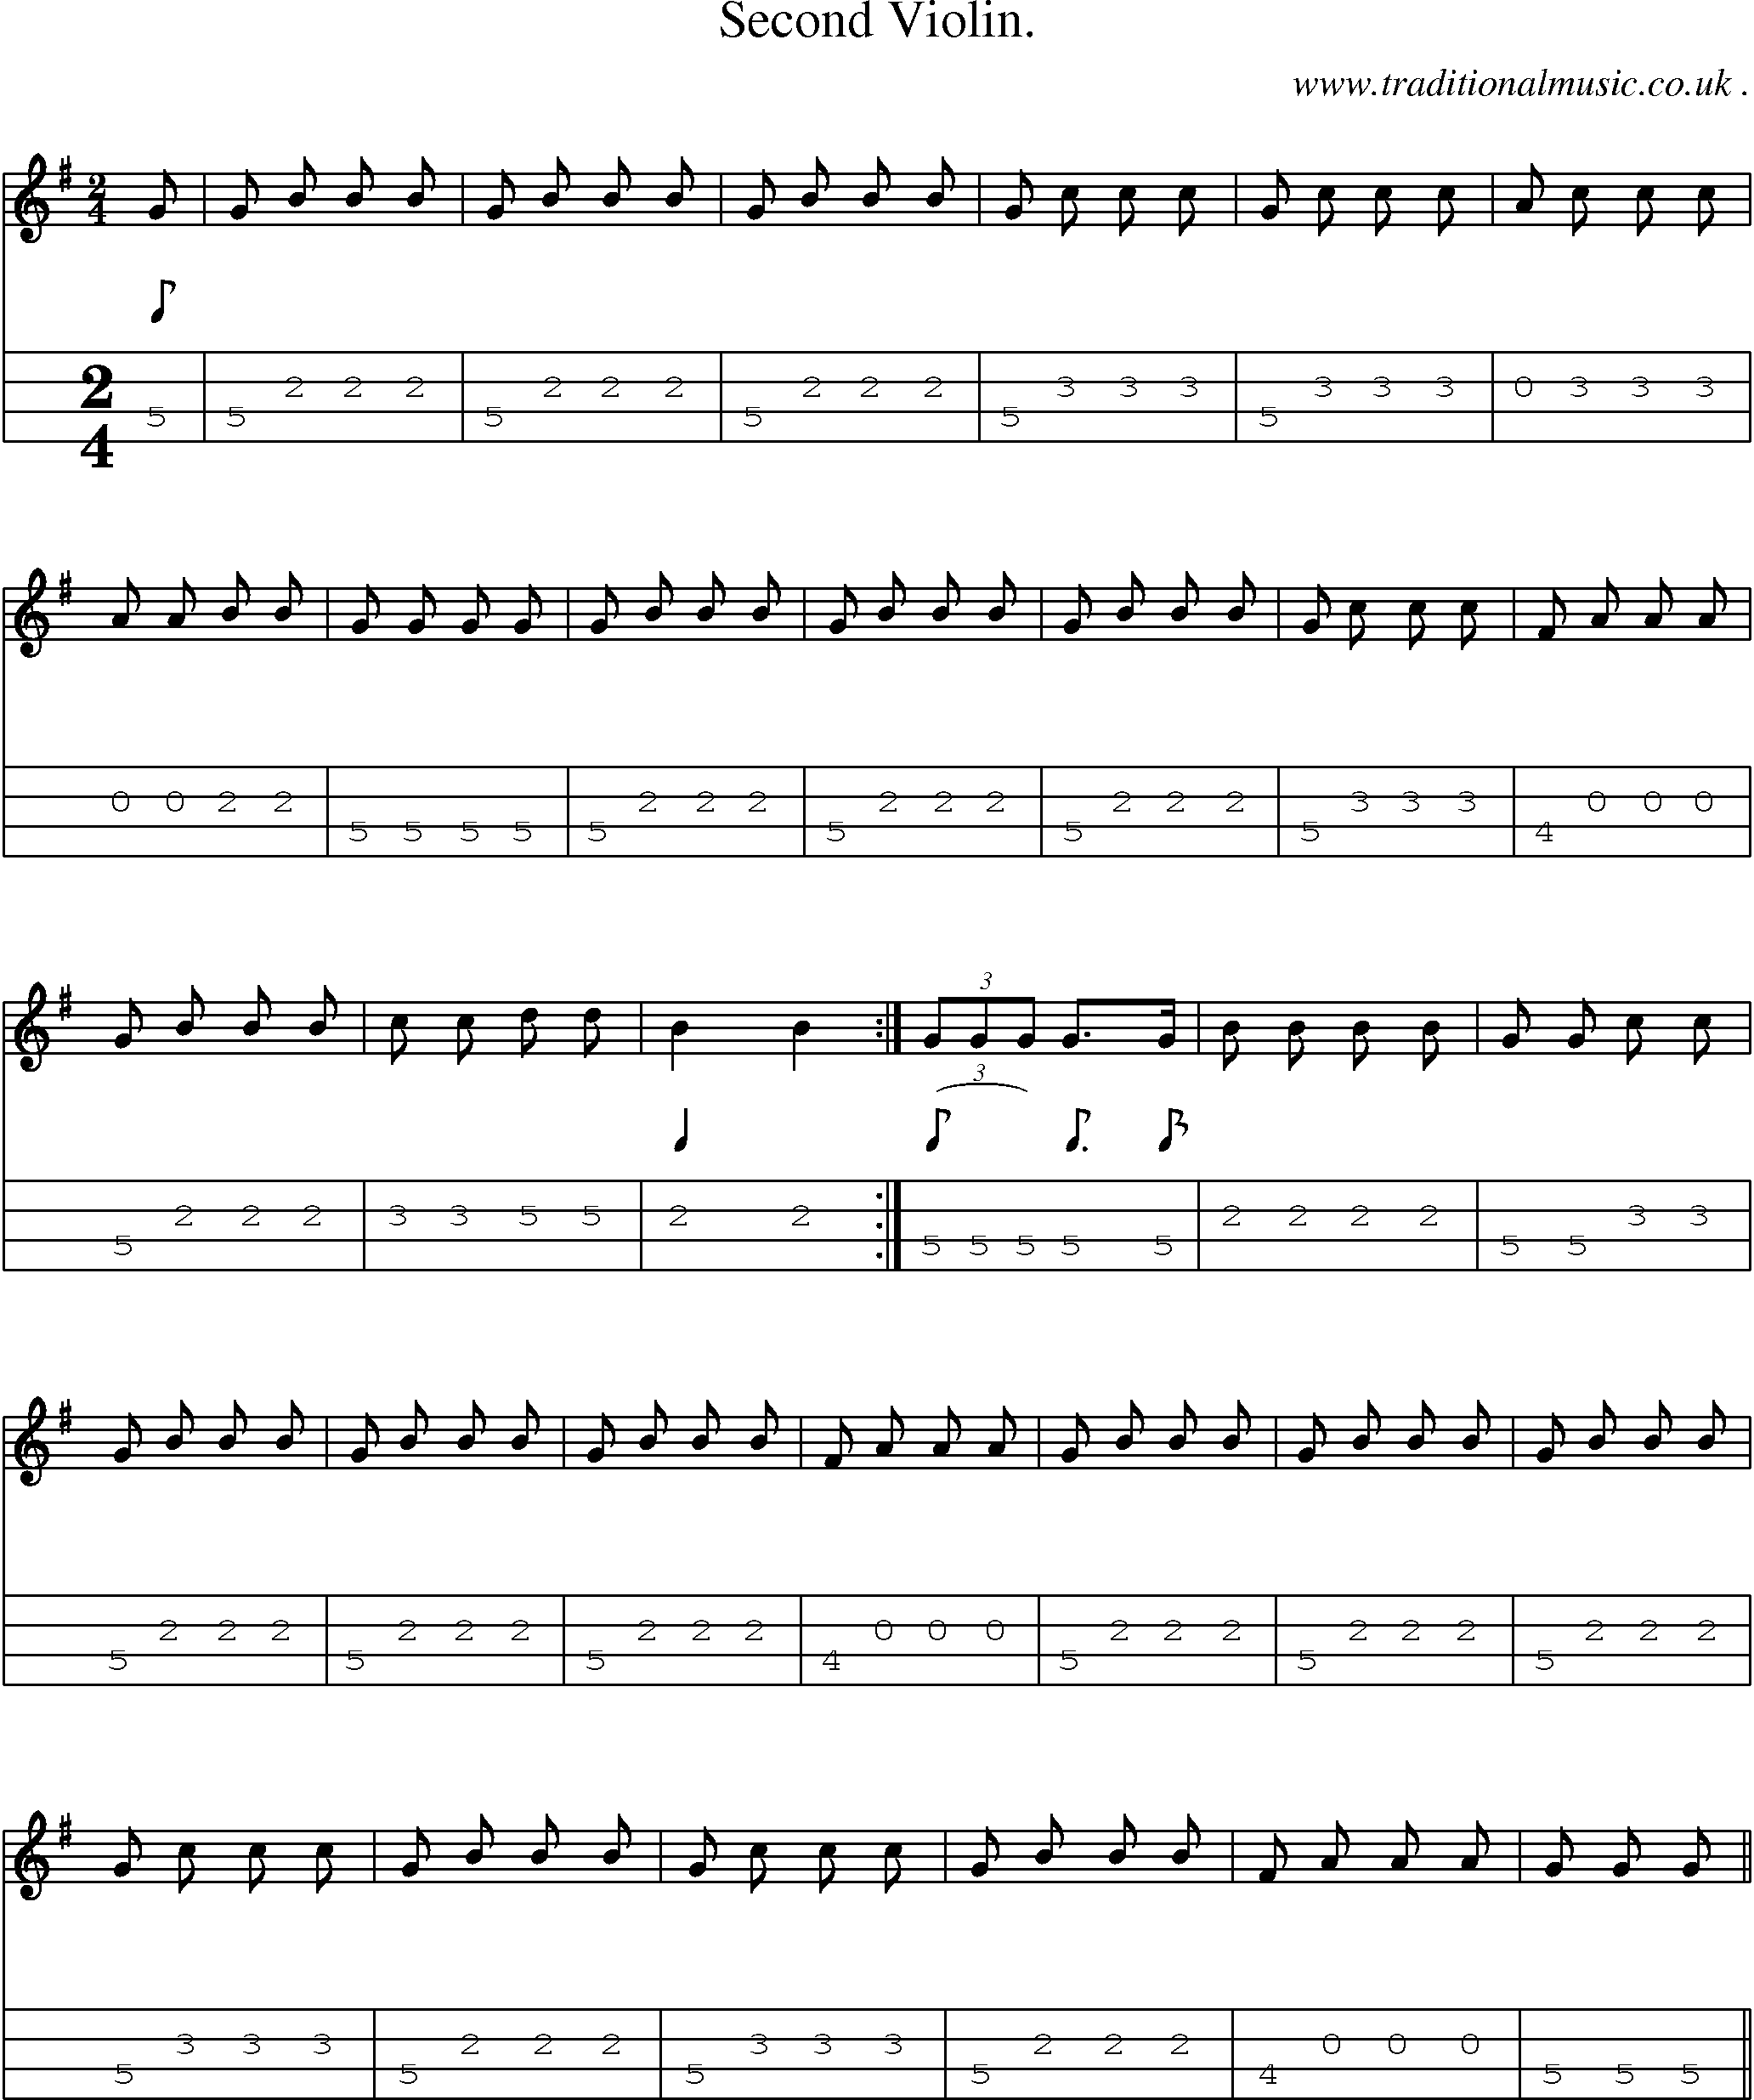 Folk and Traditional Music, Sheet-Music, Mandolin tab, midi, mp3 and PDF for: Second Violin